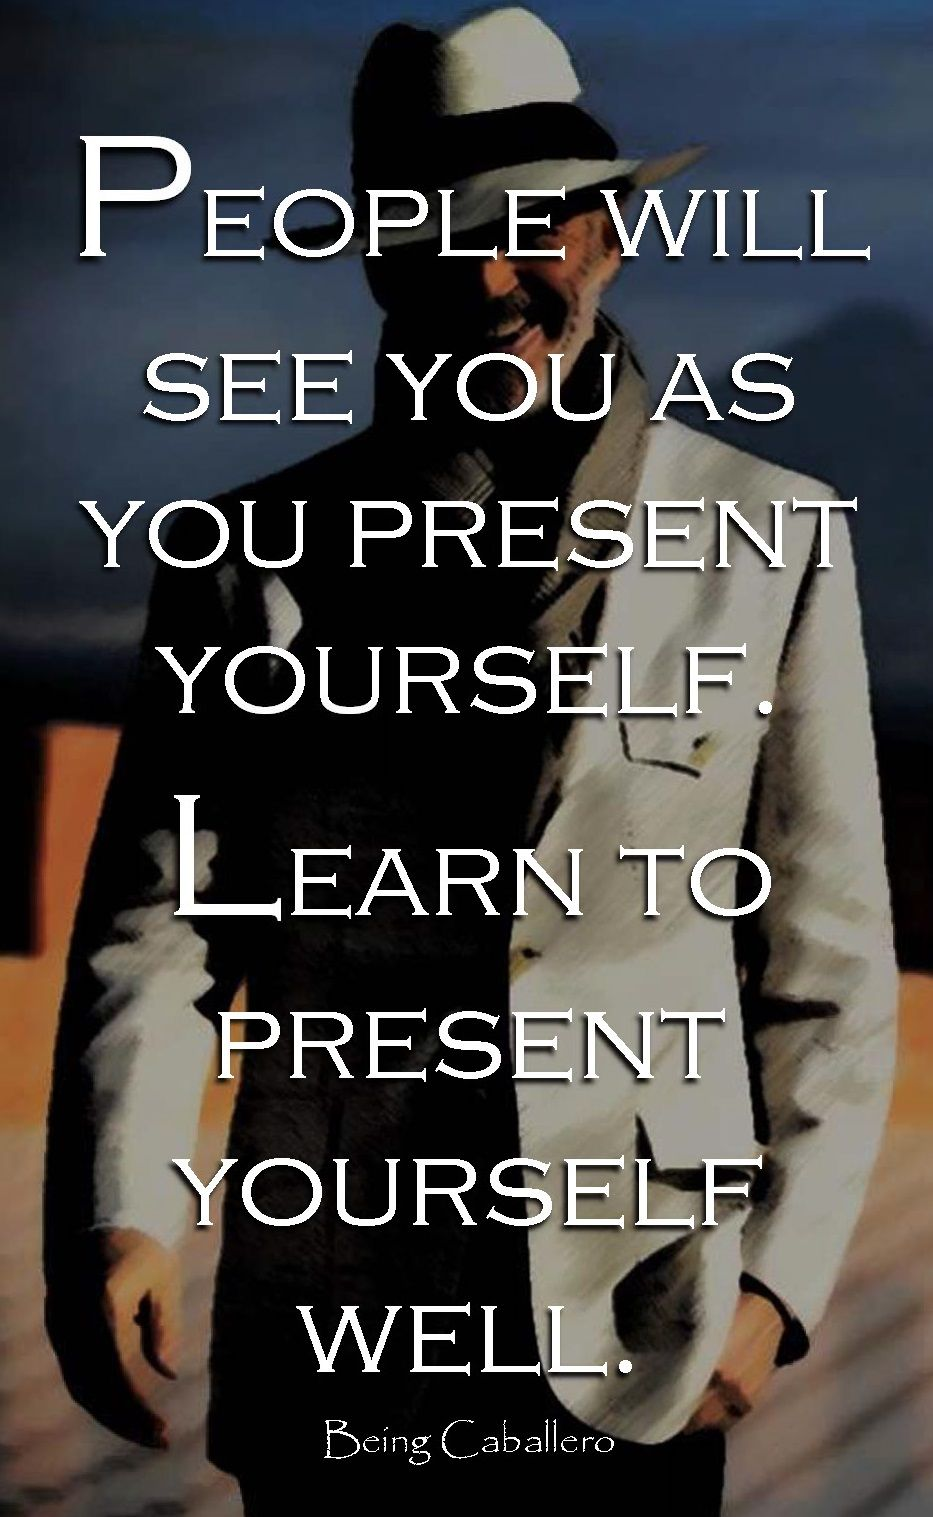 People will see you as you present yourself. Learn to present yourself well. -Being Caballero